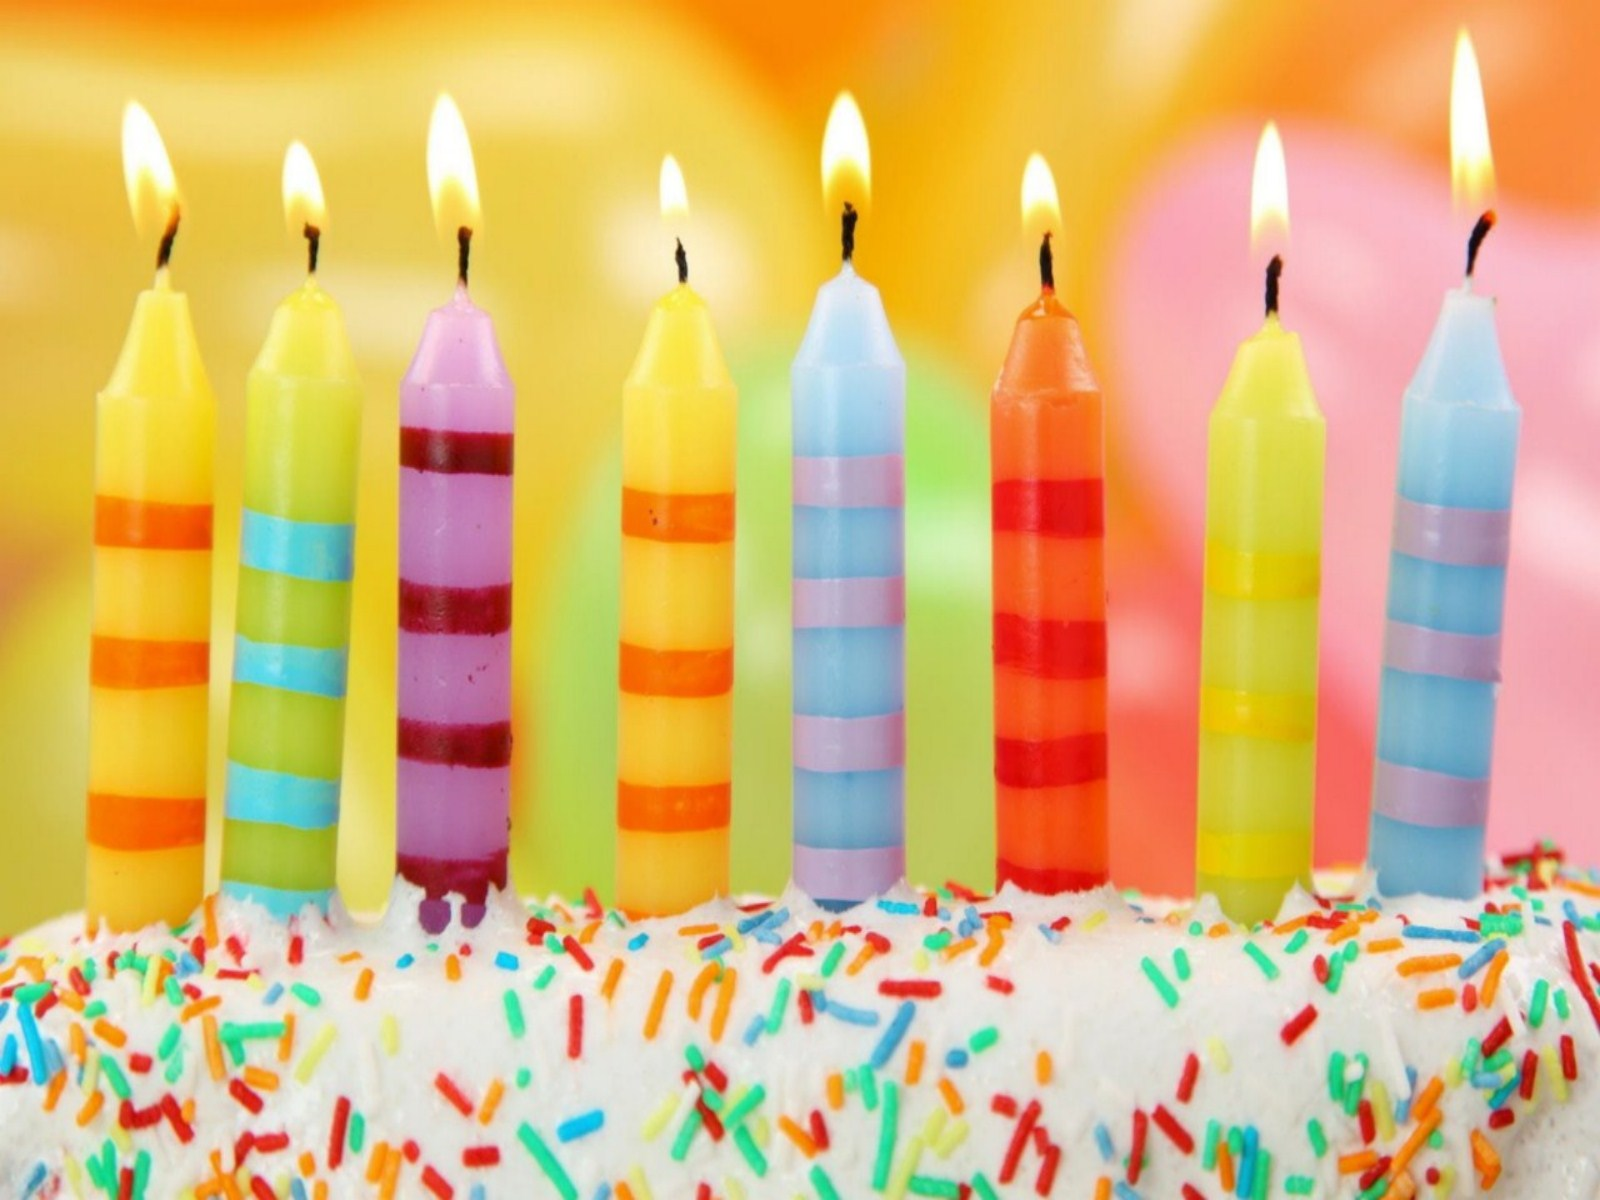 Free Birthday Wallpapers For Desktop